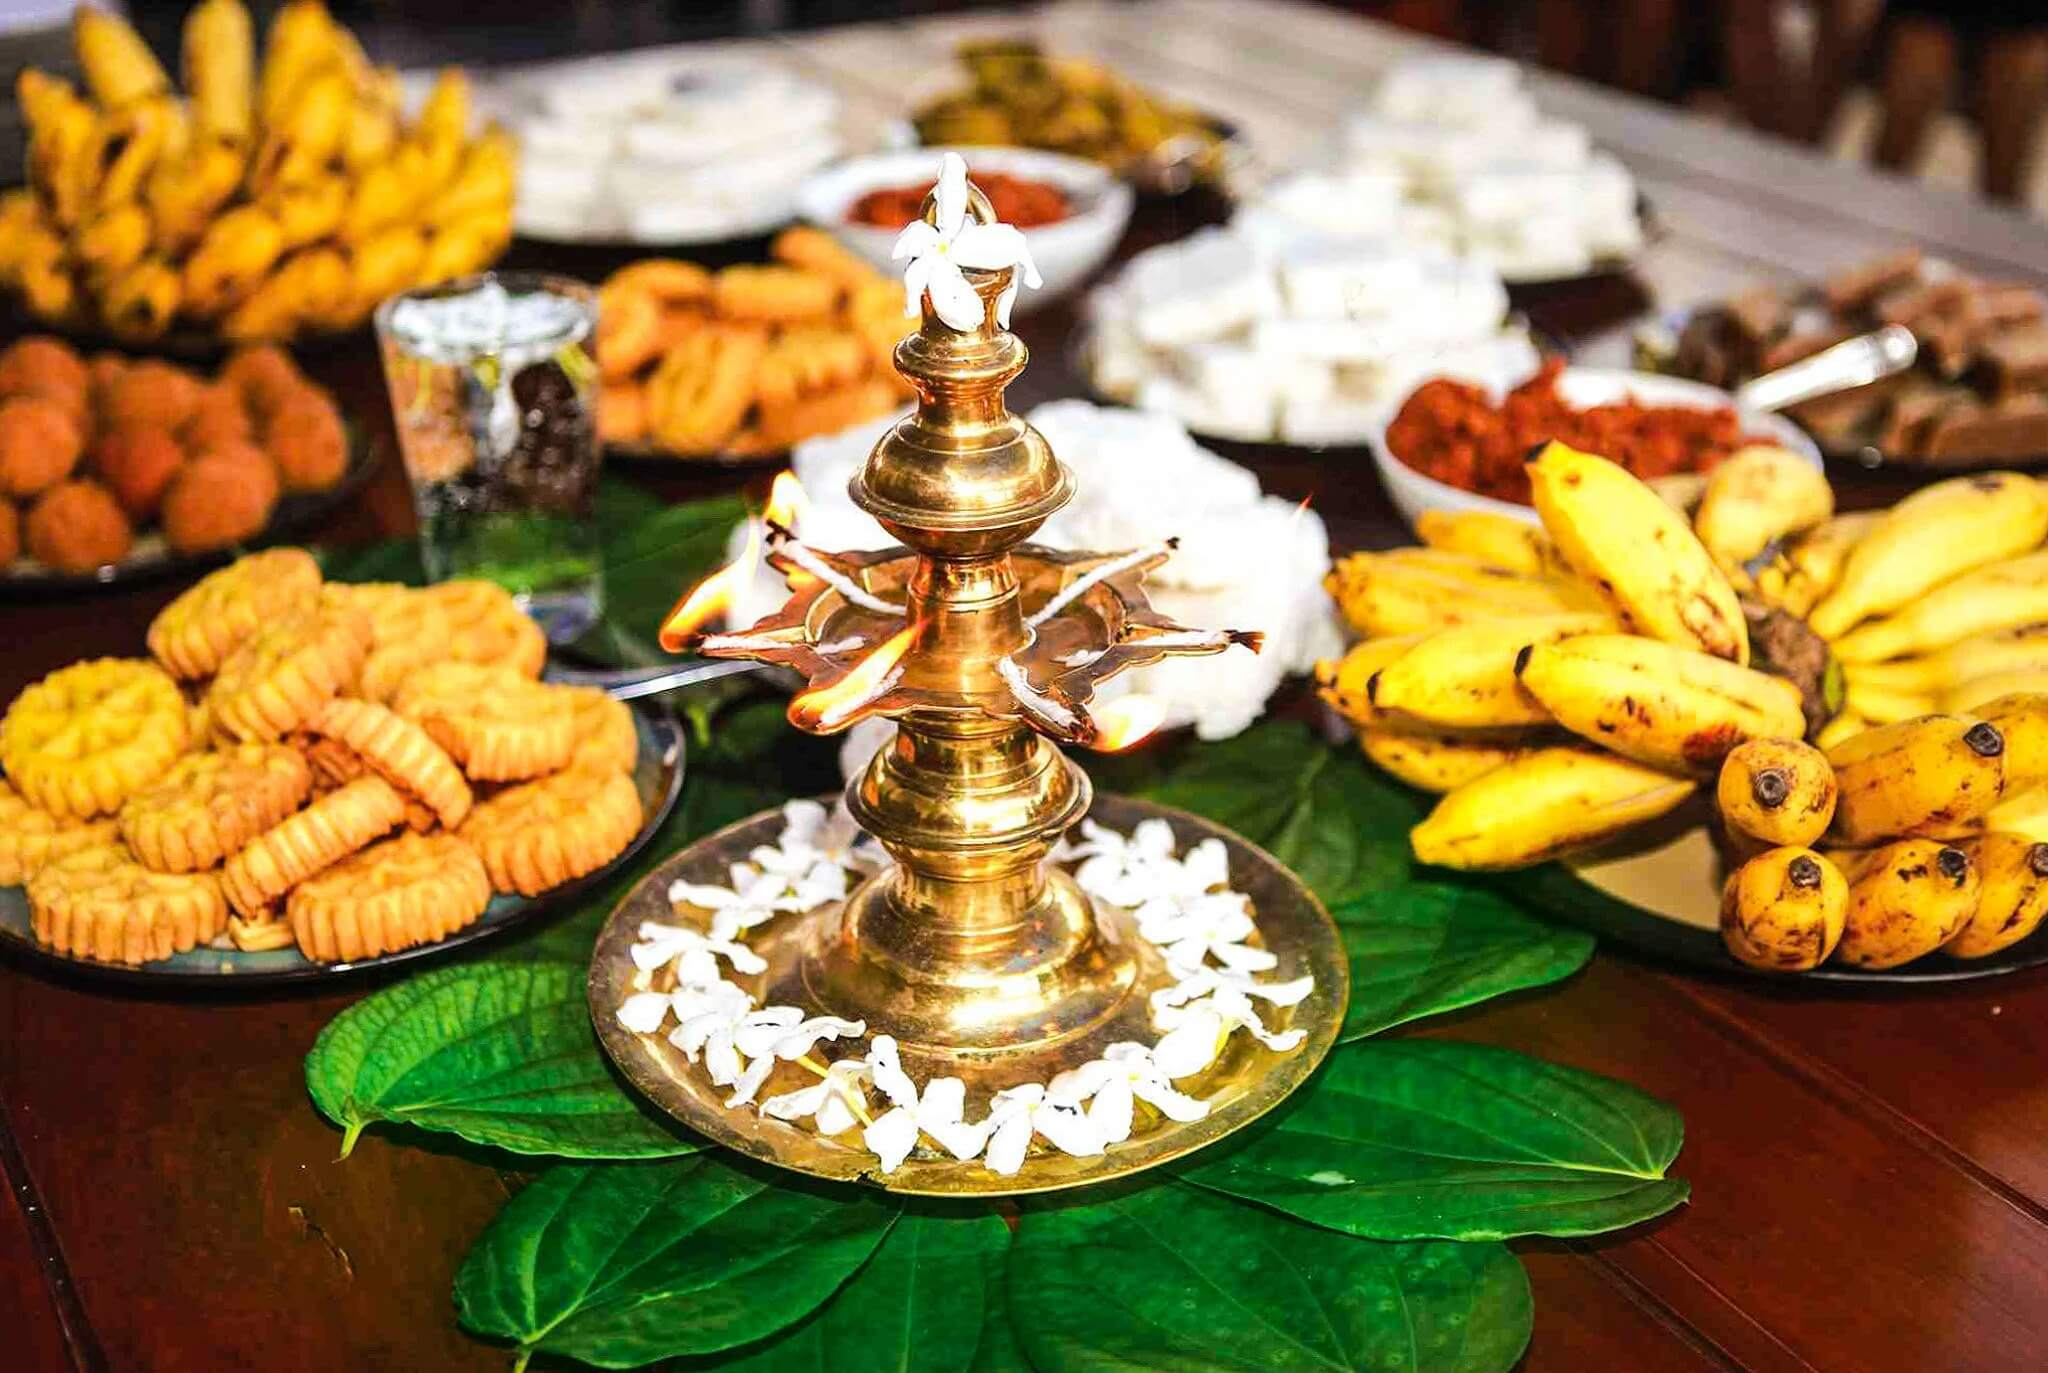 Sinhala and Tamil New Year Celebrations in Sri Lanka